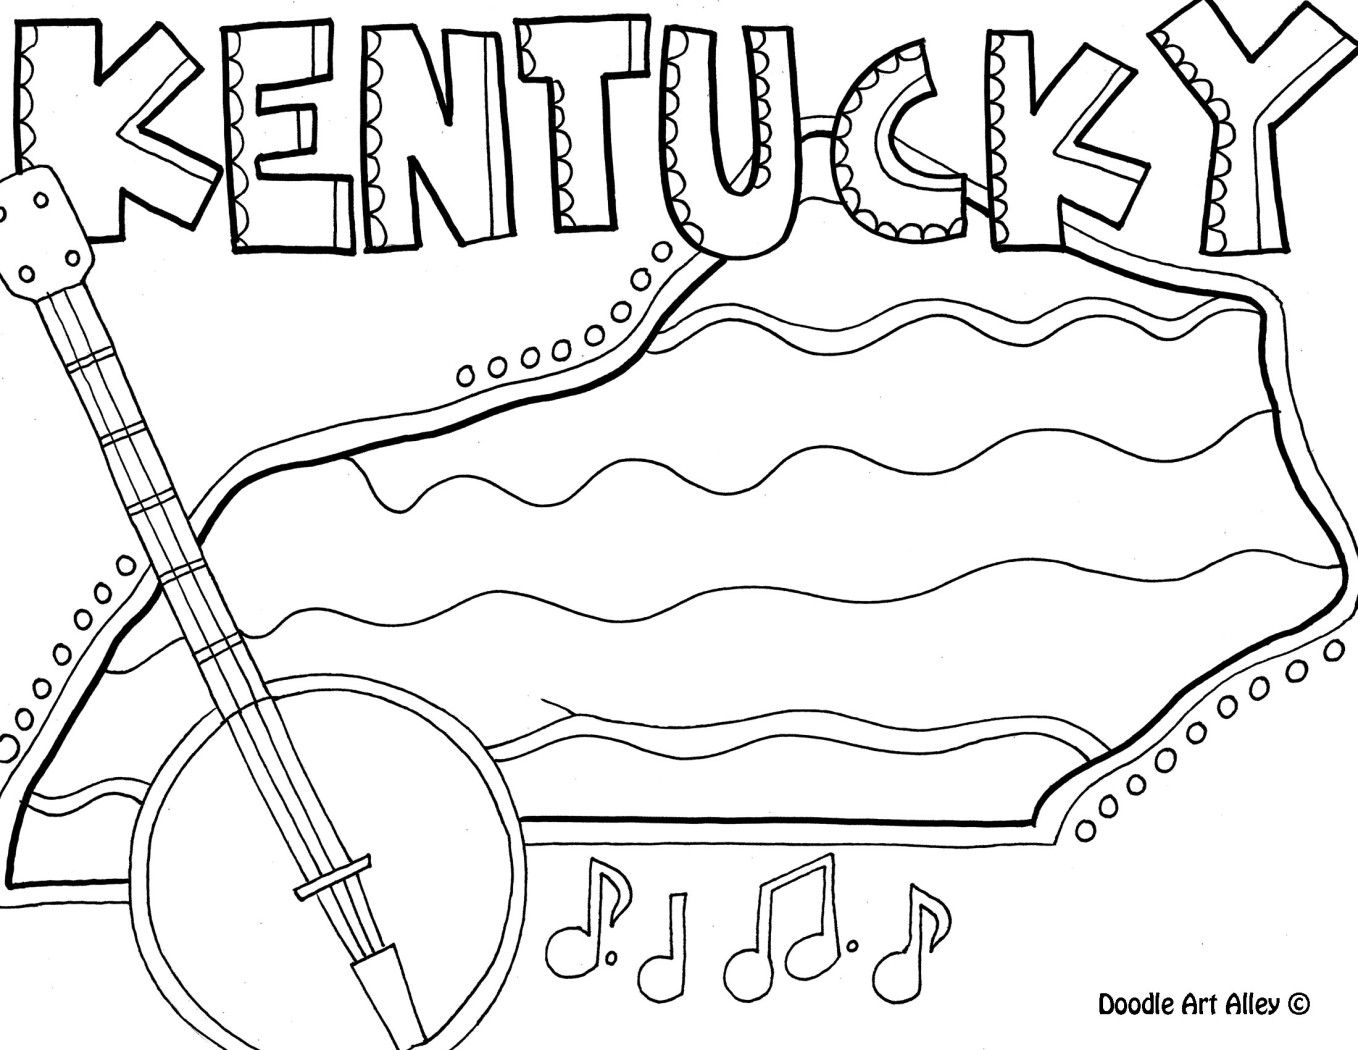 kentucky.jpg Coloring pages, Doodles, Pattern coloring pages